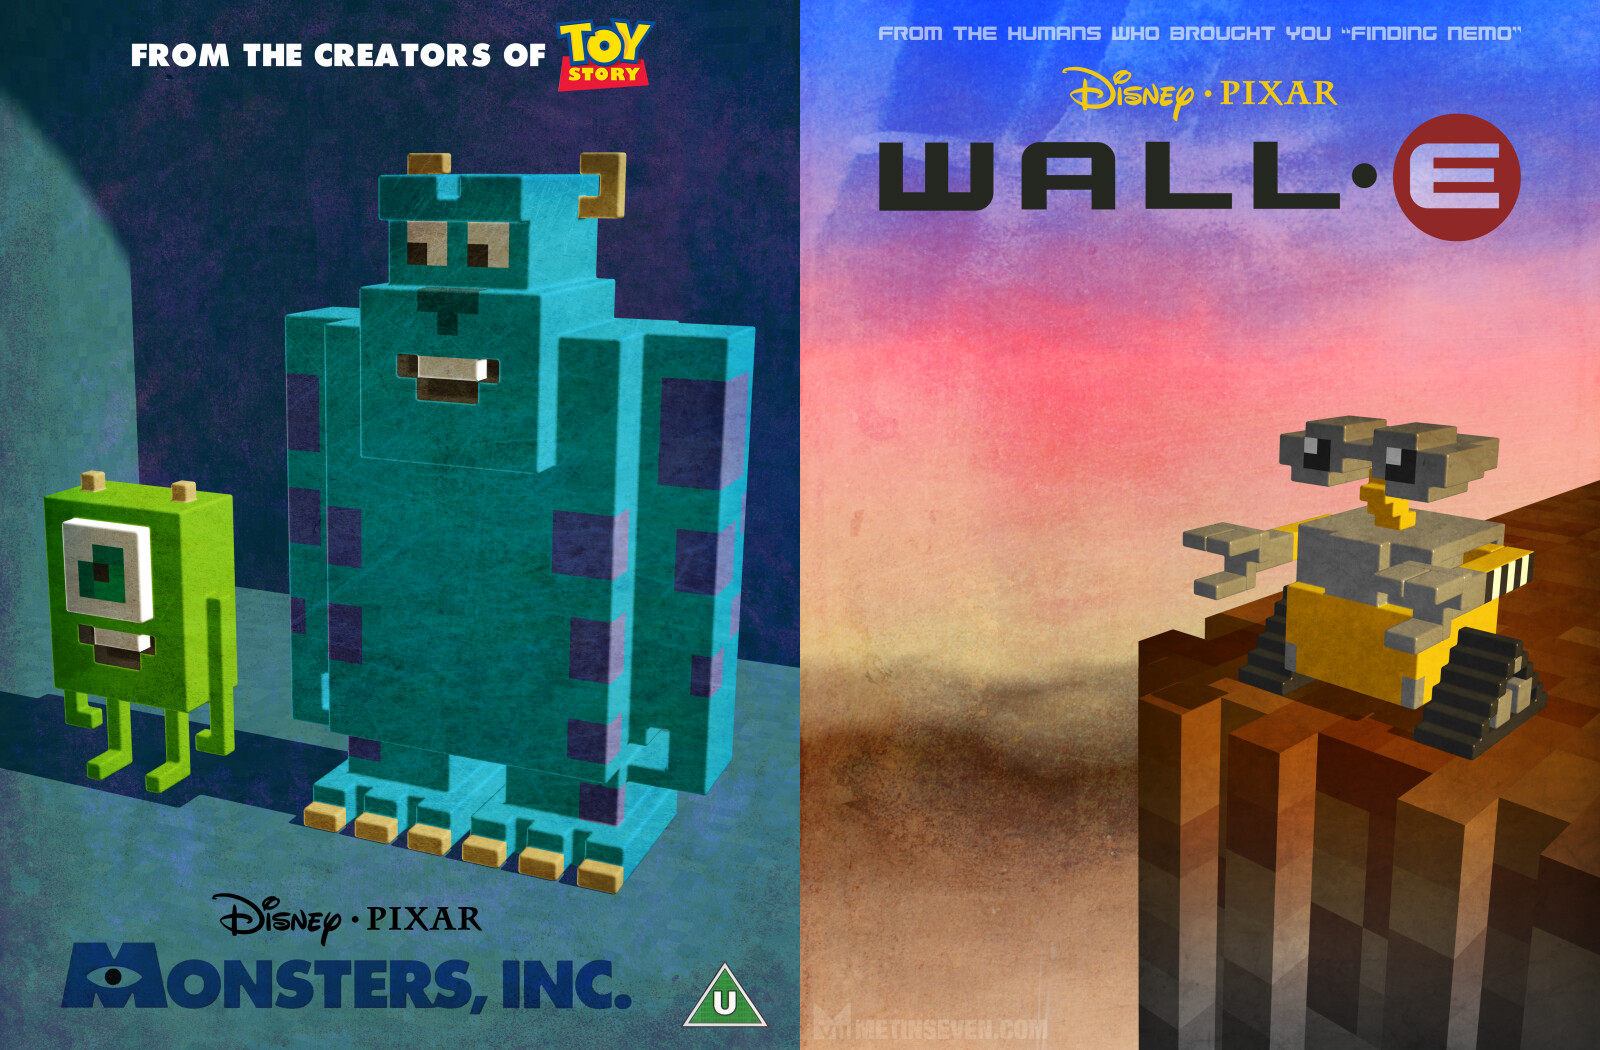 Minimalistic voxel tributes to Pixar's Monsters, Inc. and Wall-E